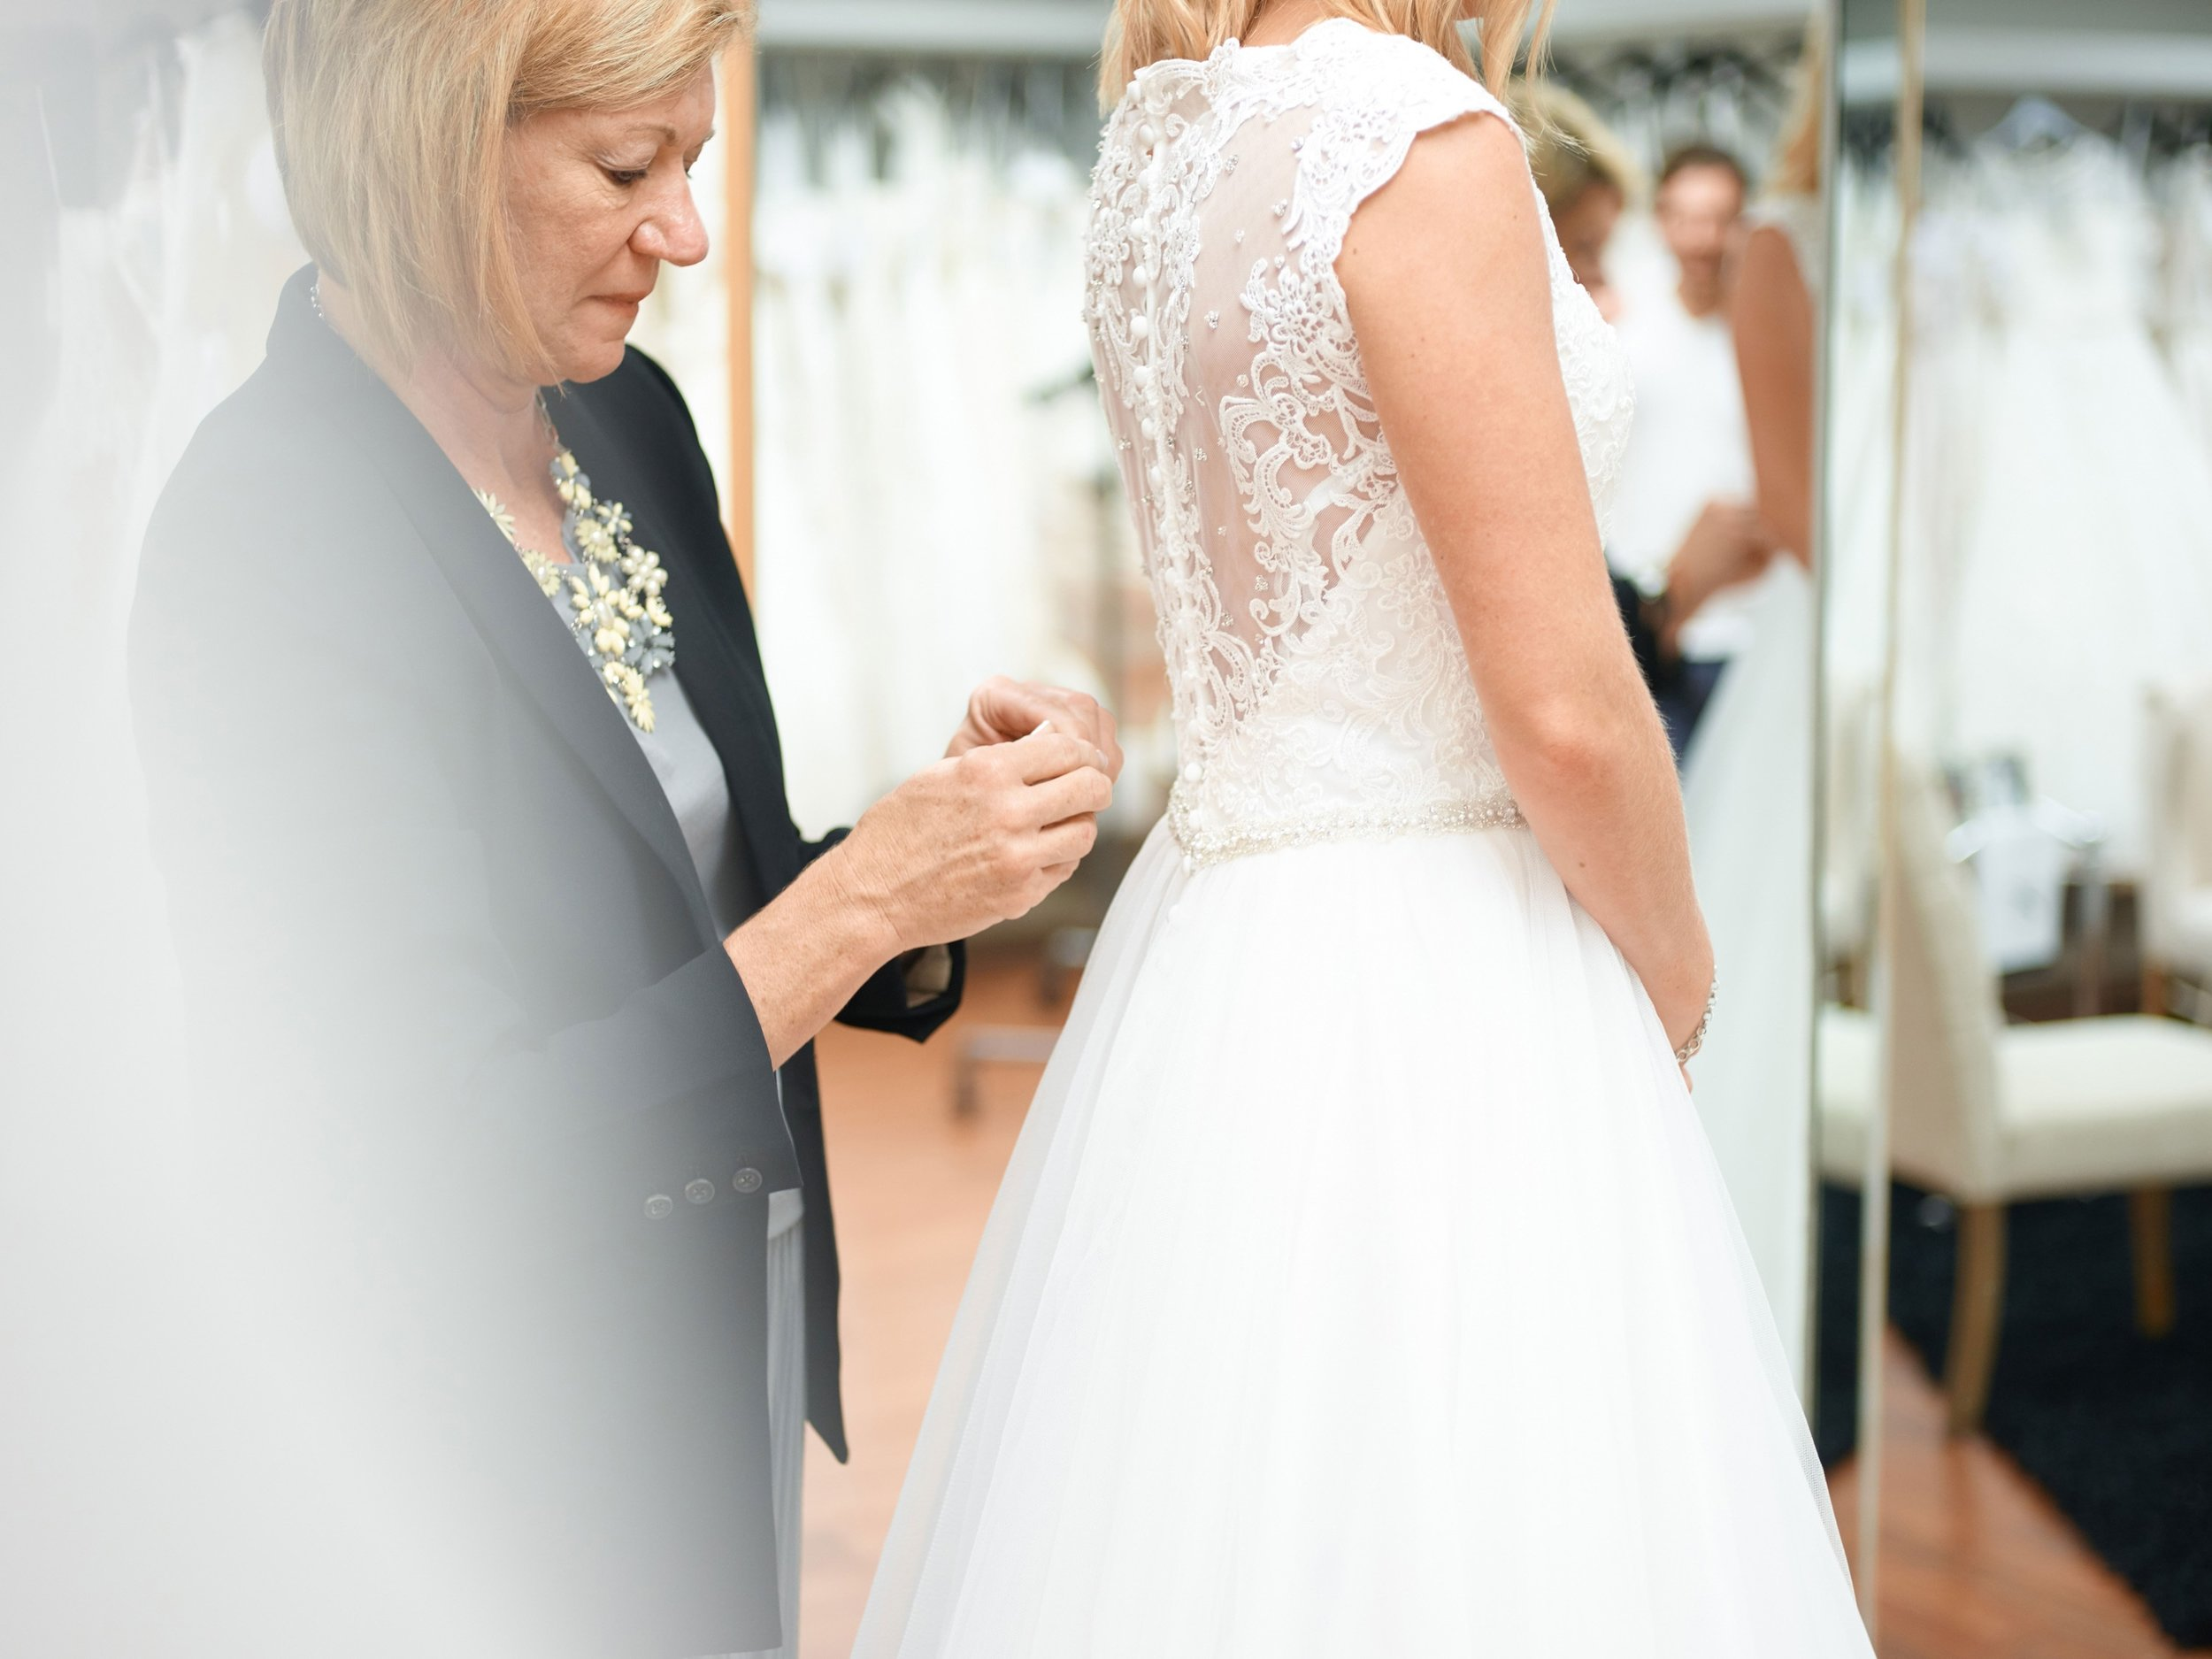 Our experts are here to help you look your best on your special day.